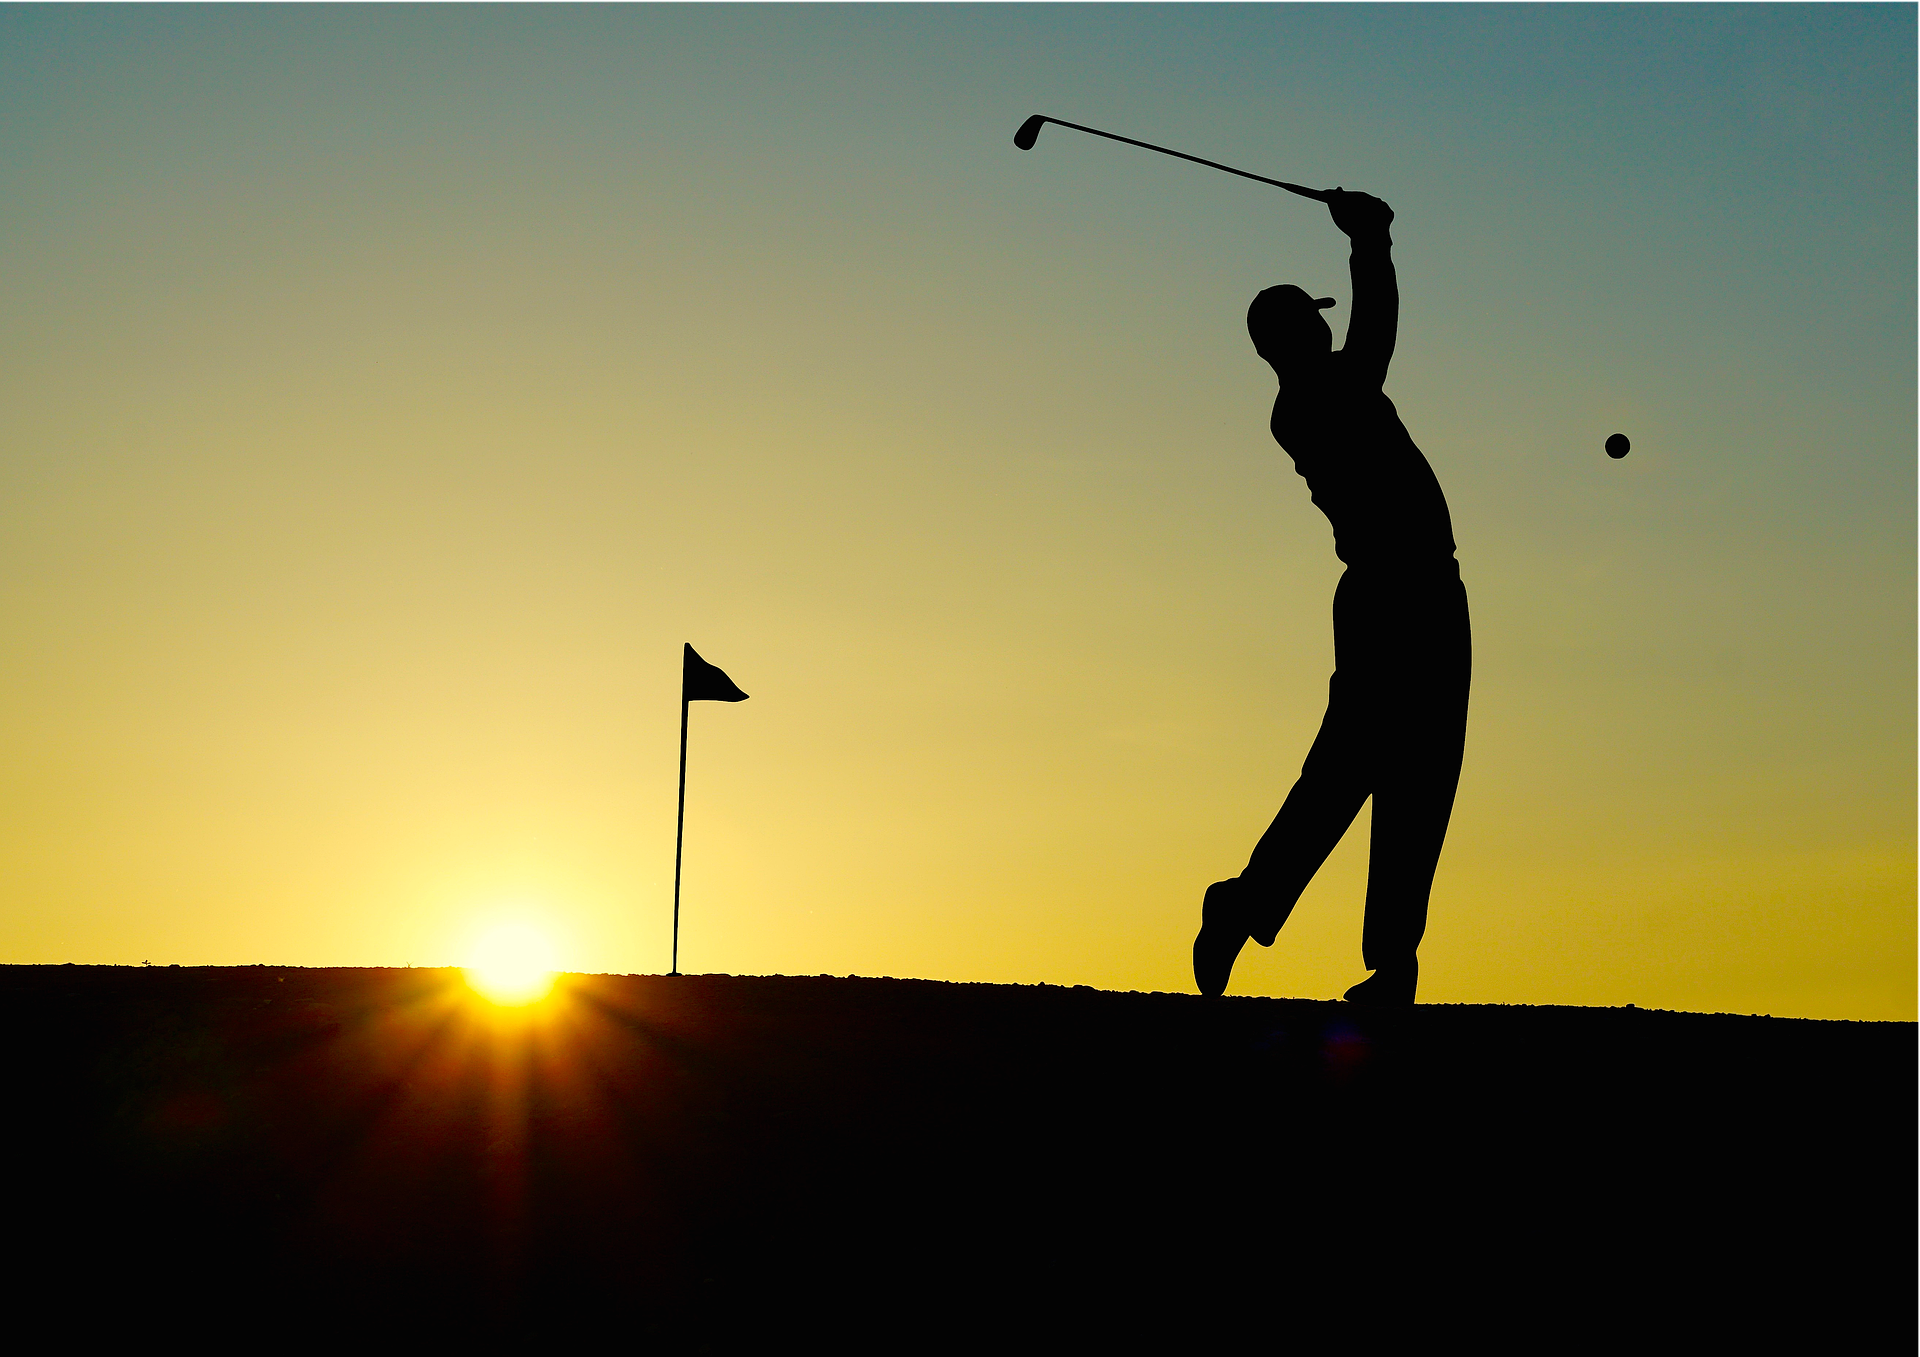 WHO WILL DOMINATE GOLF IN 2020